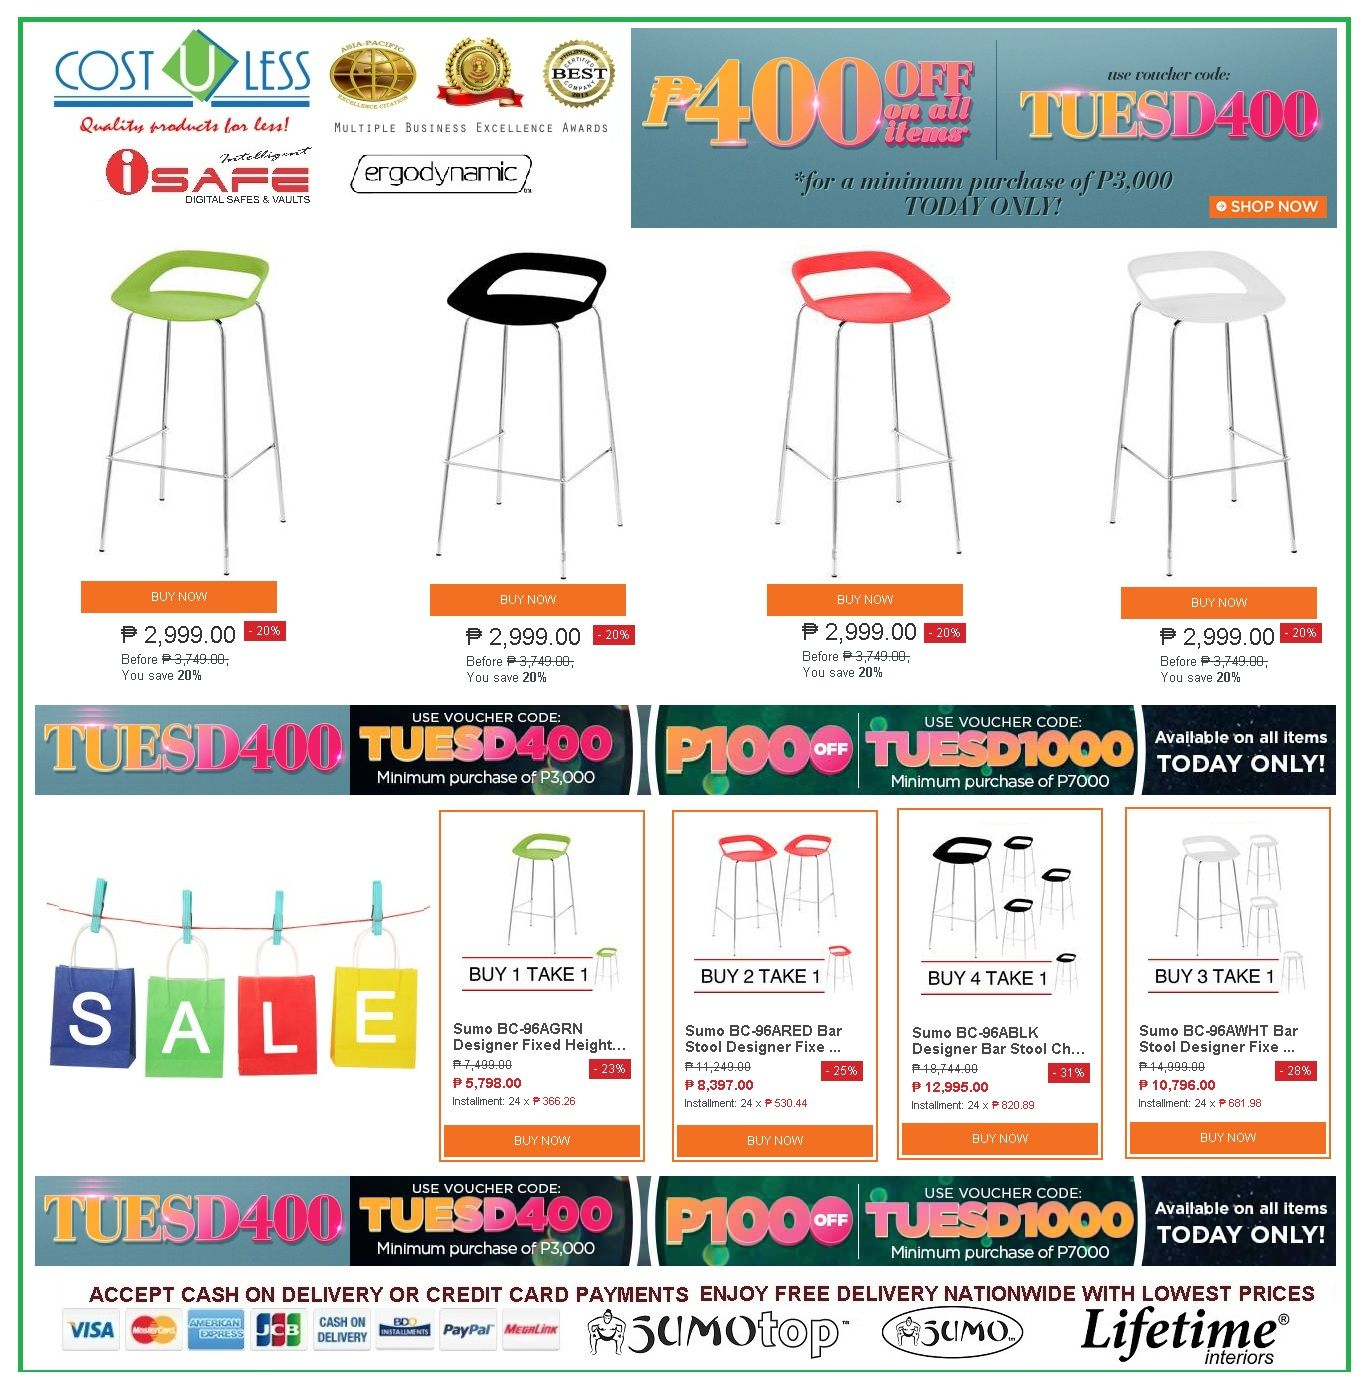 Comfy BAR CHAIRS Lazada Shop Online TUESD PROMO! Save